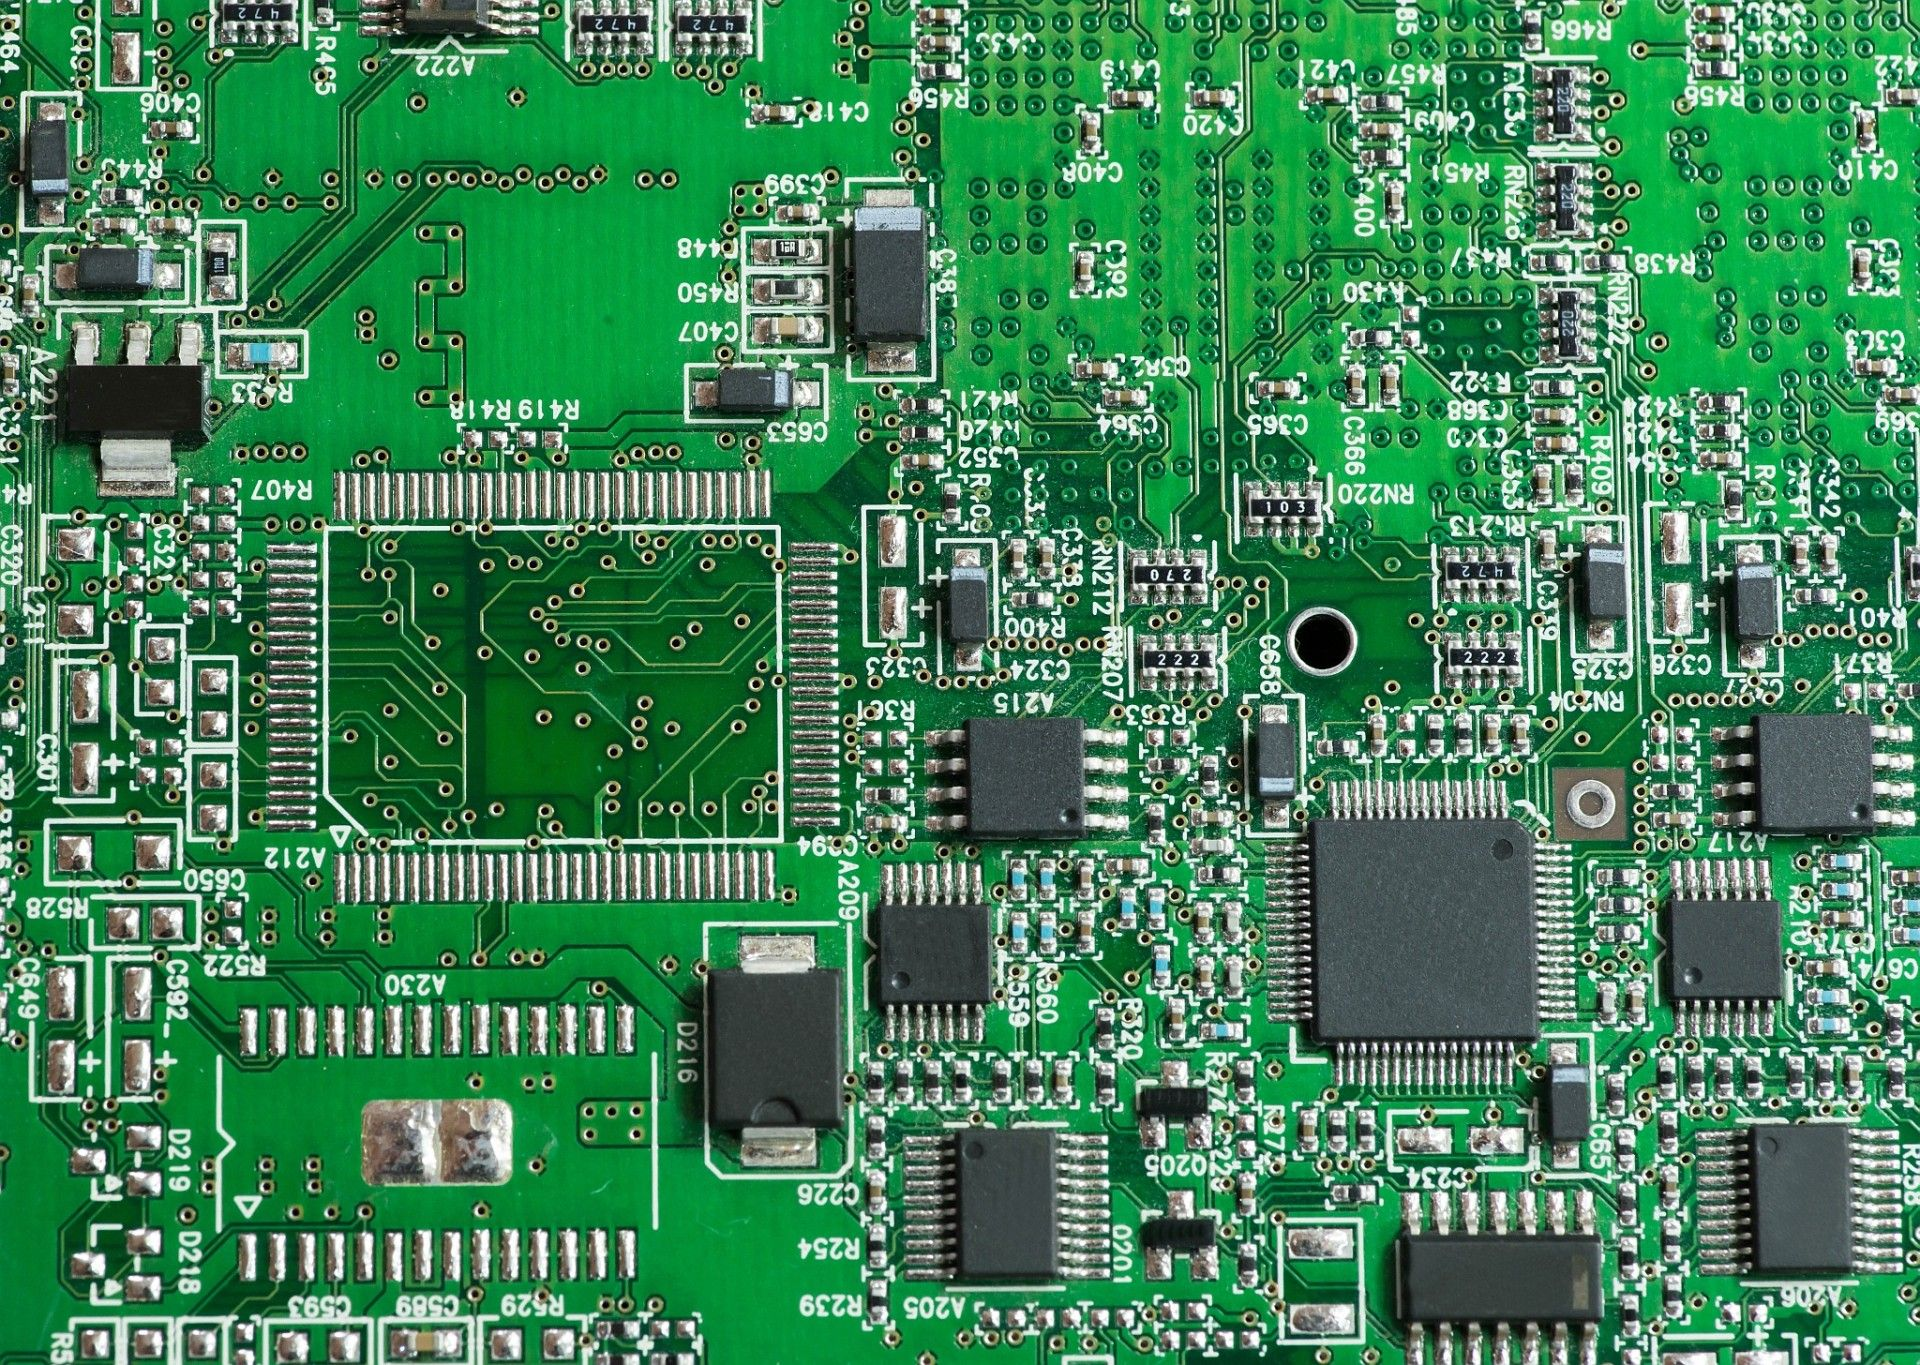 7 Fatal Mistakes to Avoid on Your PCB Design | Electronics